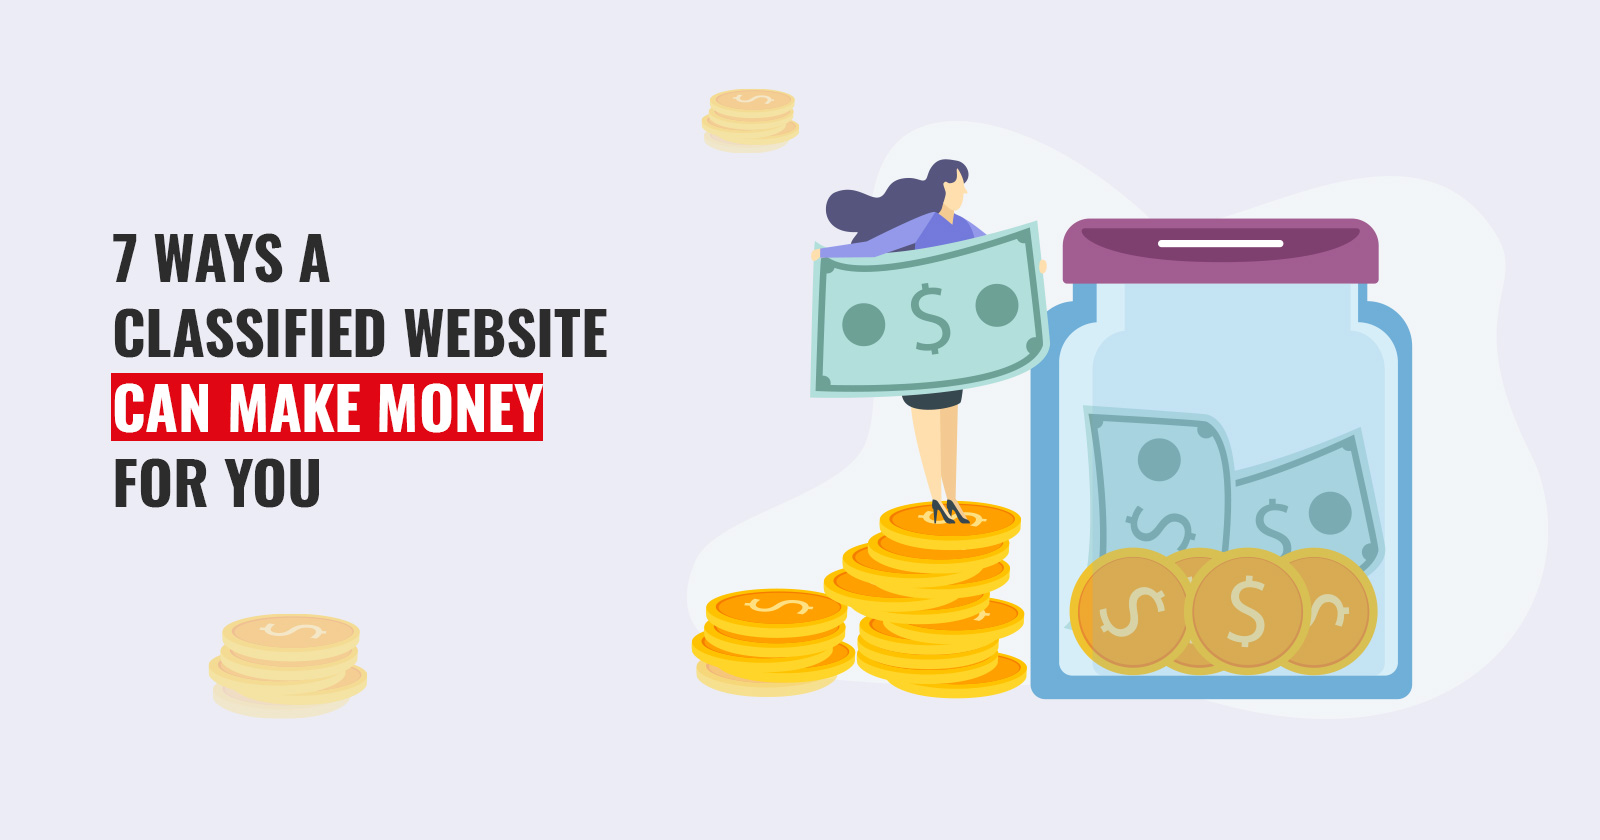 How to make money with classified website